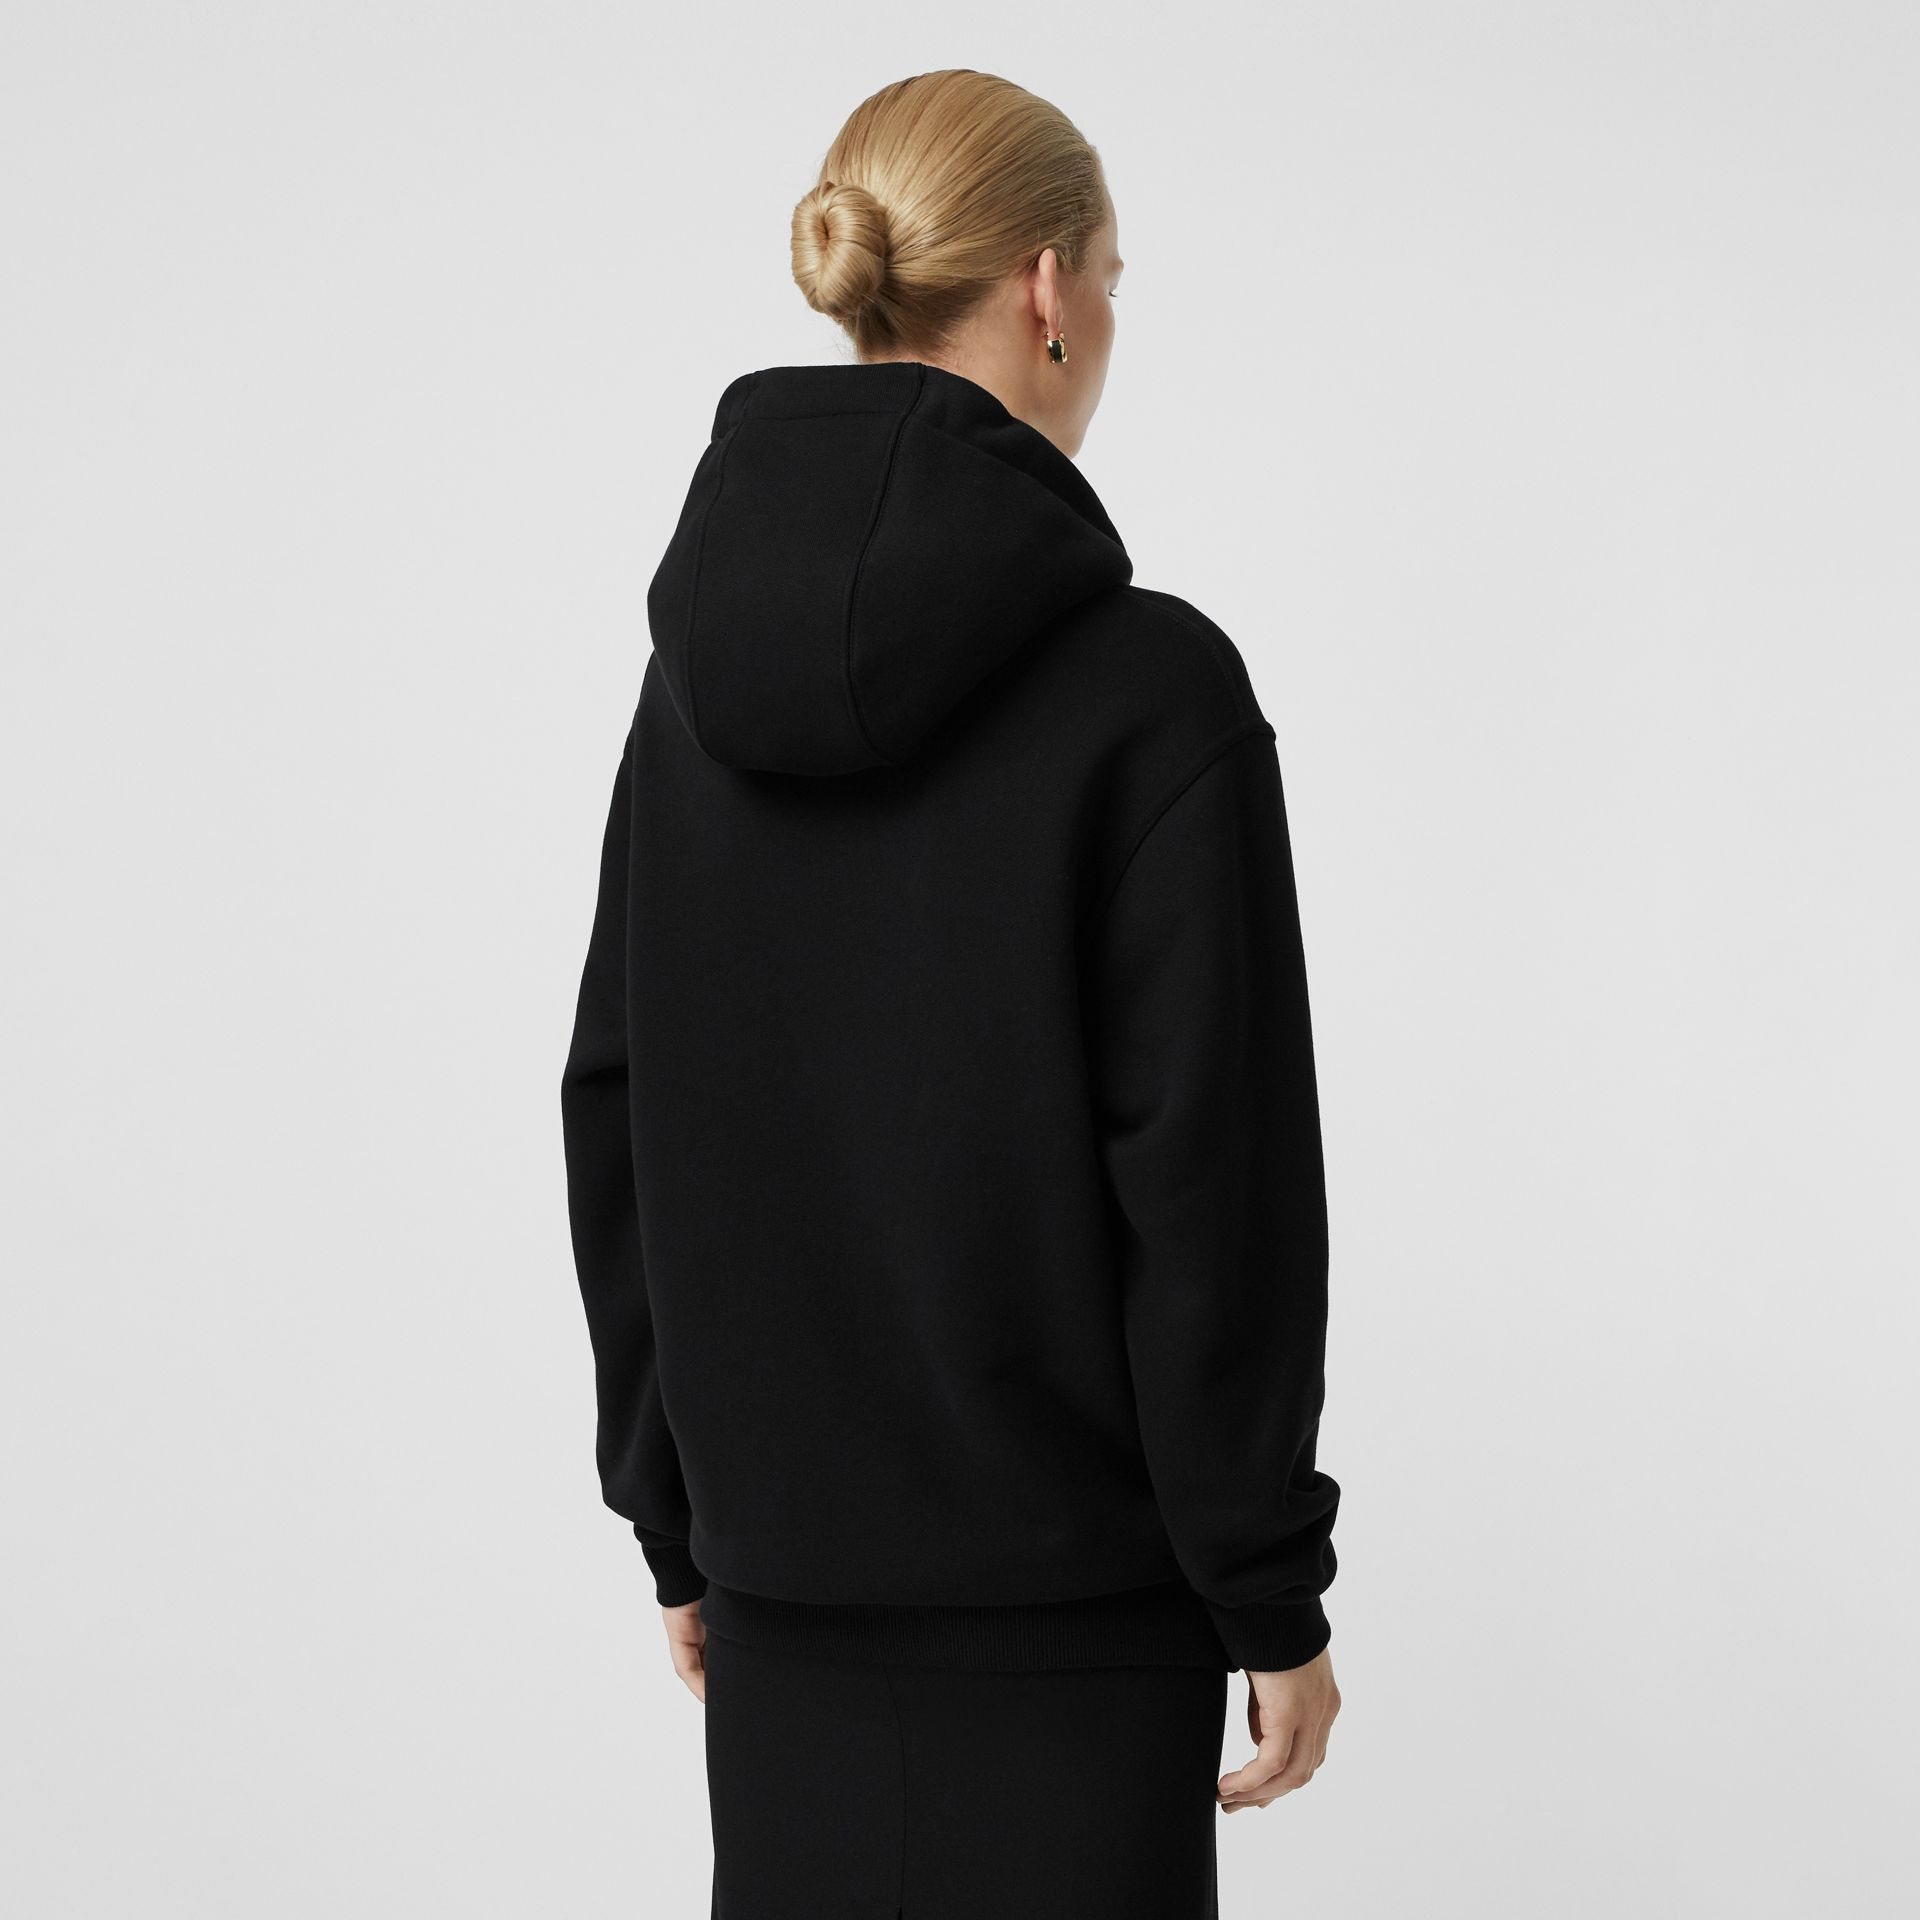 Chain Detail Cotton Oversized Hoodie in Black - Women | Burberry Australia - gallery image 2